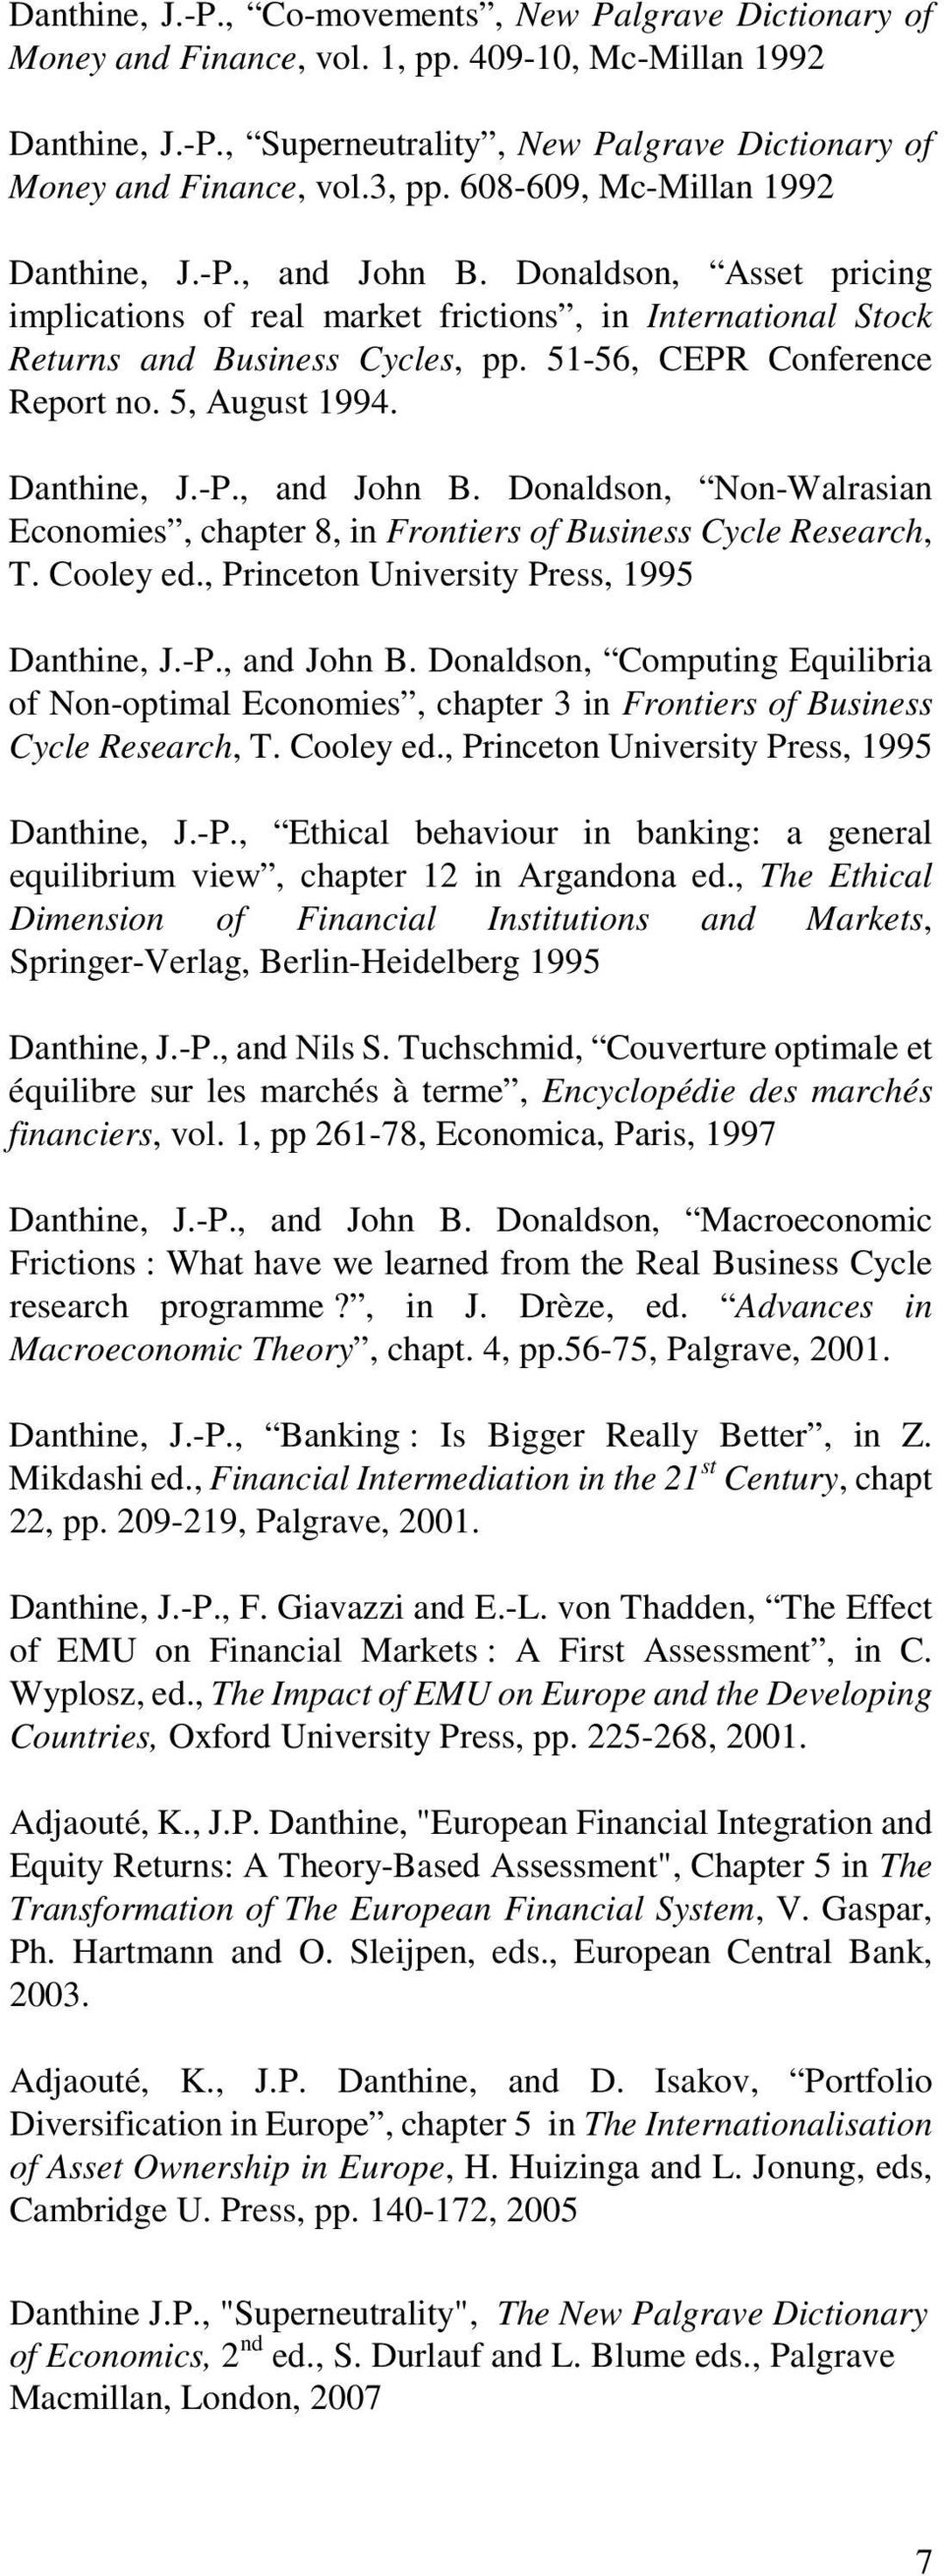 51-56, CEPR Conference Report no. 5, August 1994. Danthine, J.-P., and John B. Donaldson, Non-Walrasian Economies, chapter 8, in Frontiers of Business Cycle Research, T. Cooley ed.